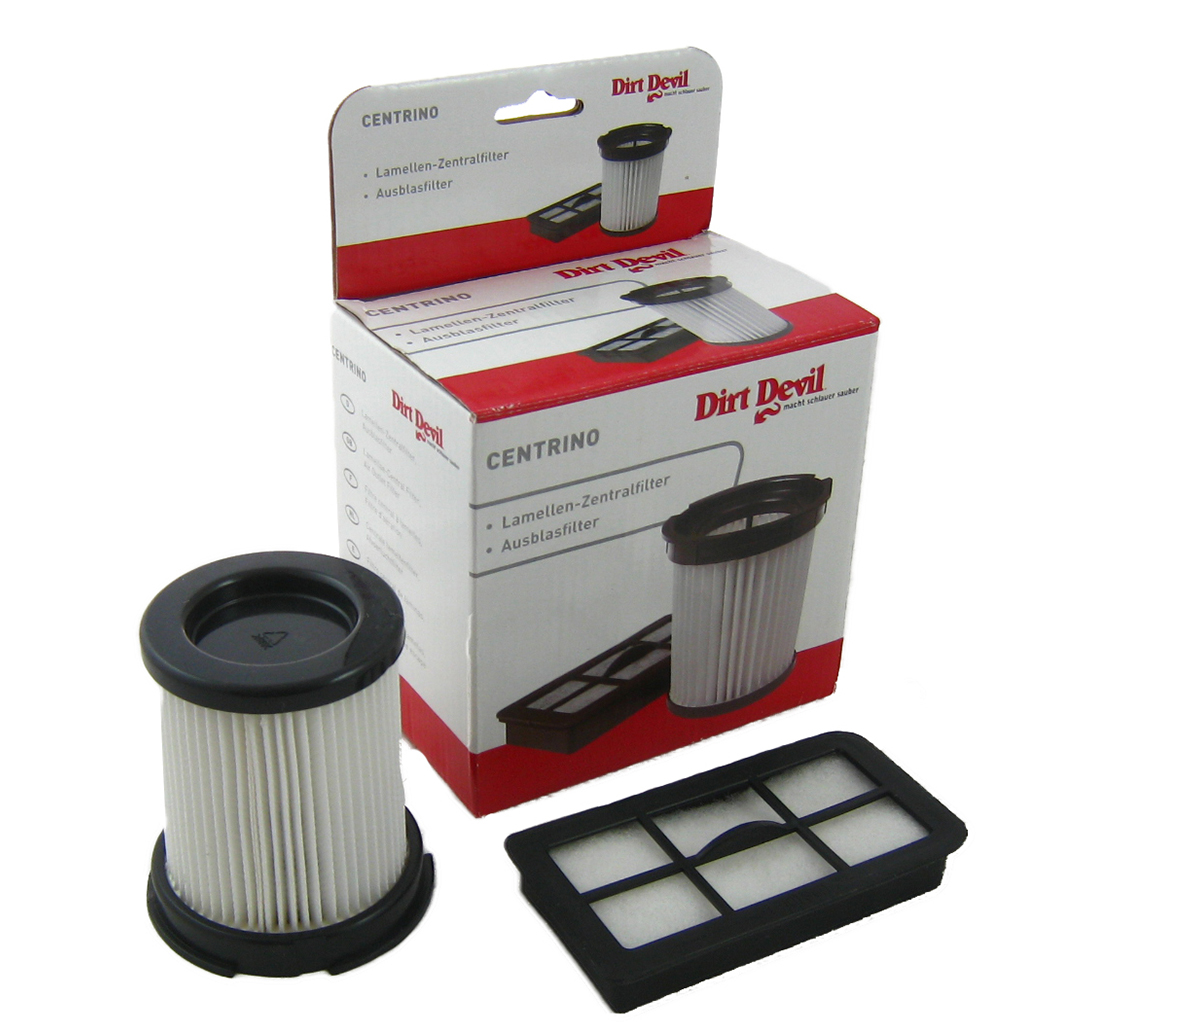 dirt devil filterset filter 1884001 f r centrino m 1884 ebay. Black Bedroom Furniture Sets. Home Design Ideas